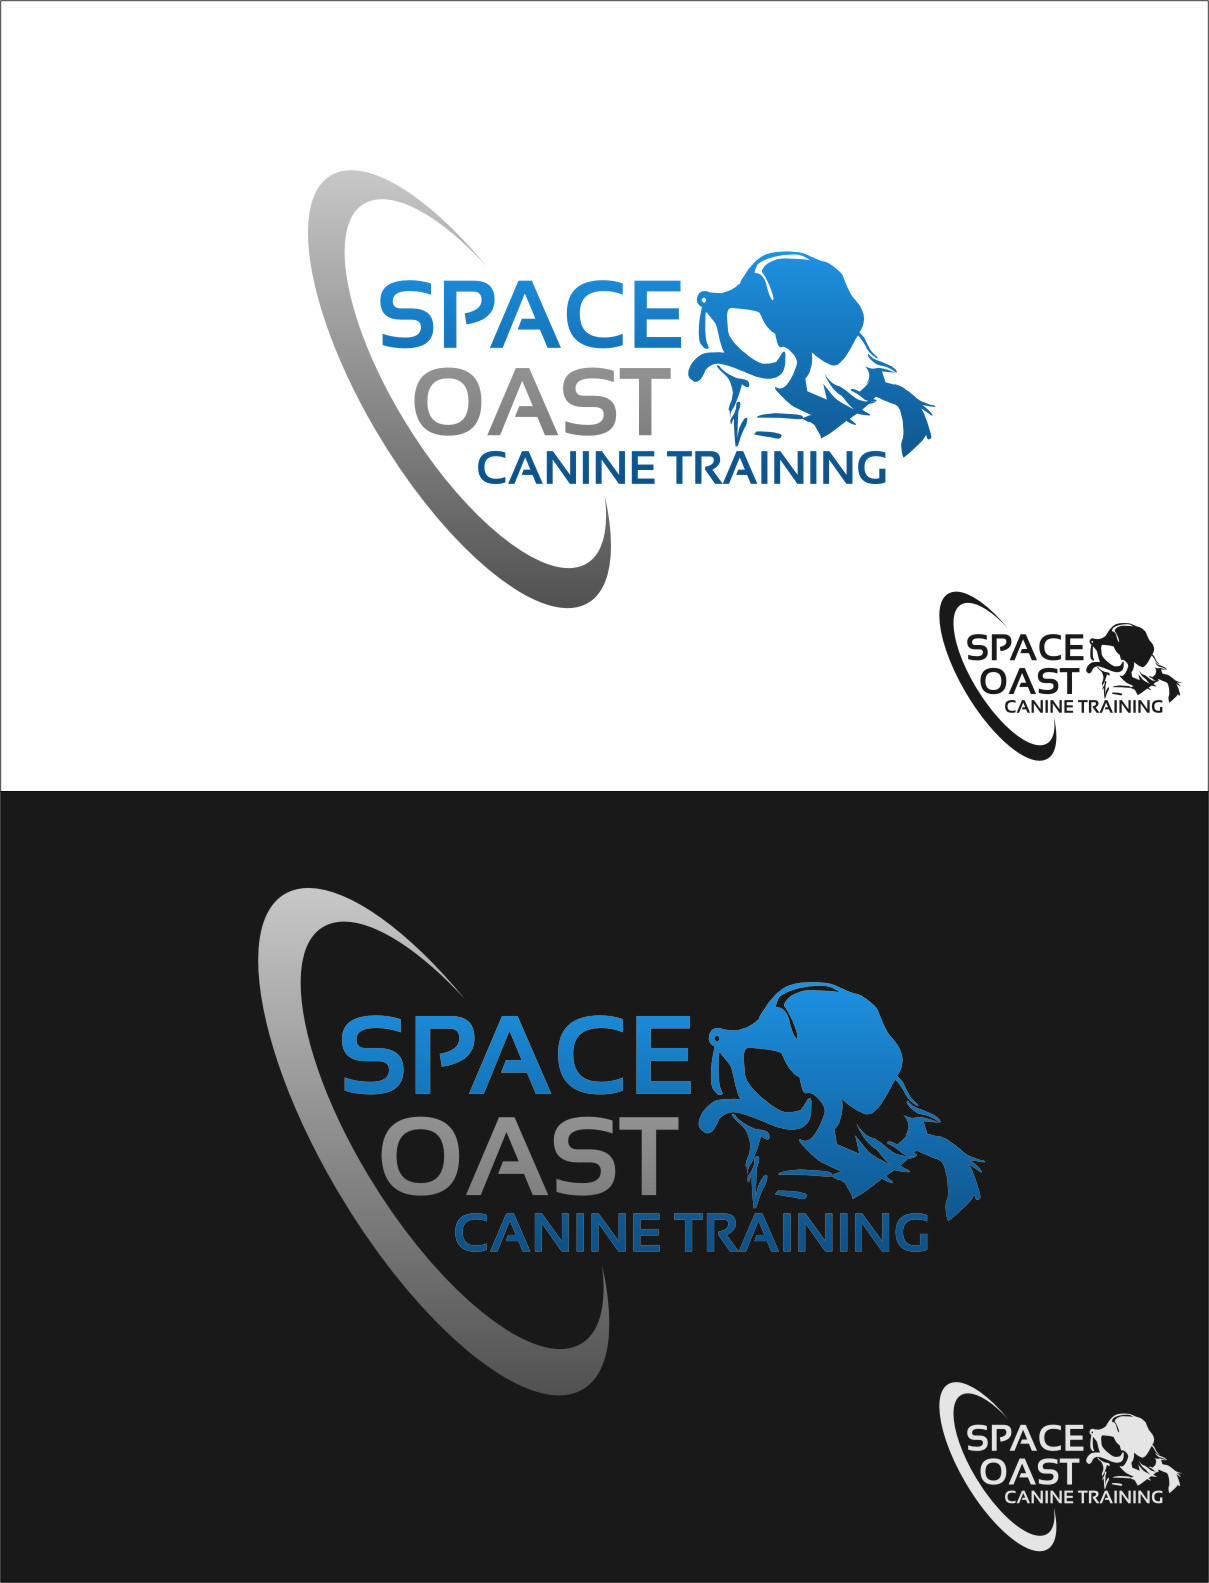 Logo Design by Ngepet_art - Entry No. 51 in the Logo Design Contest Creative Logo Design for Space Coast Canine Training.